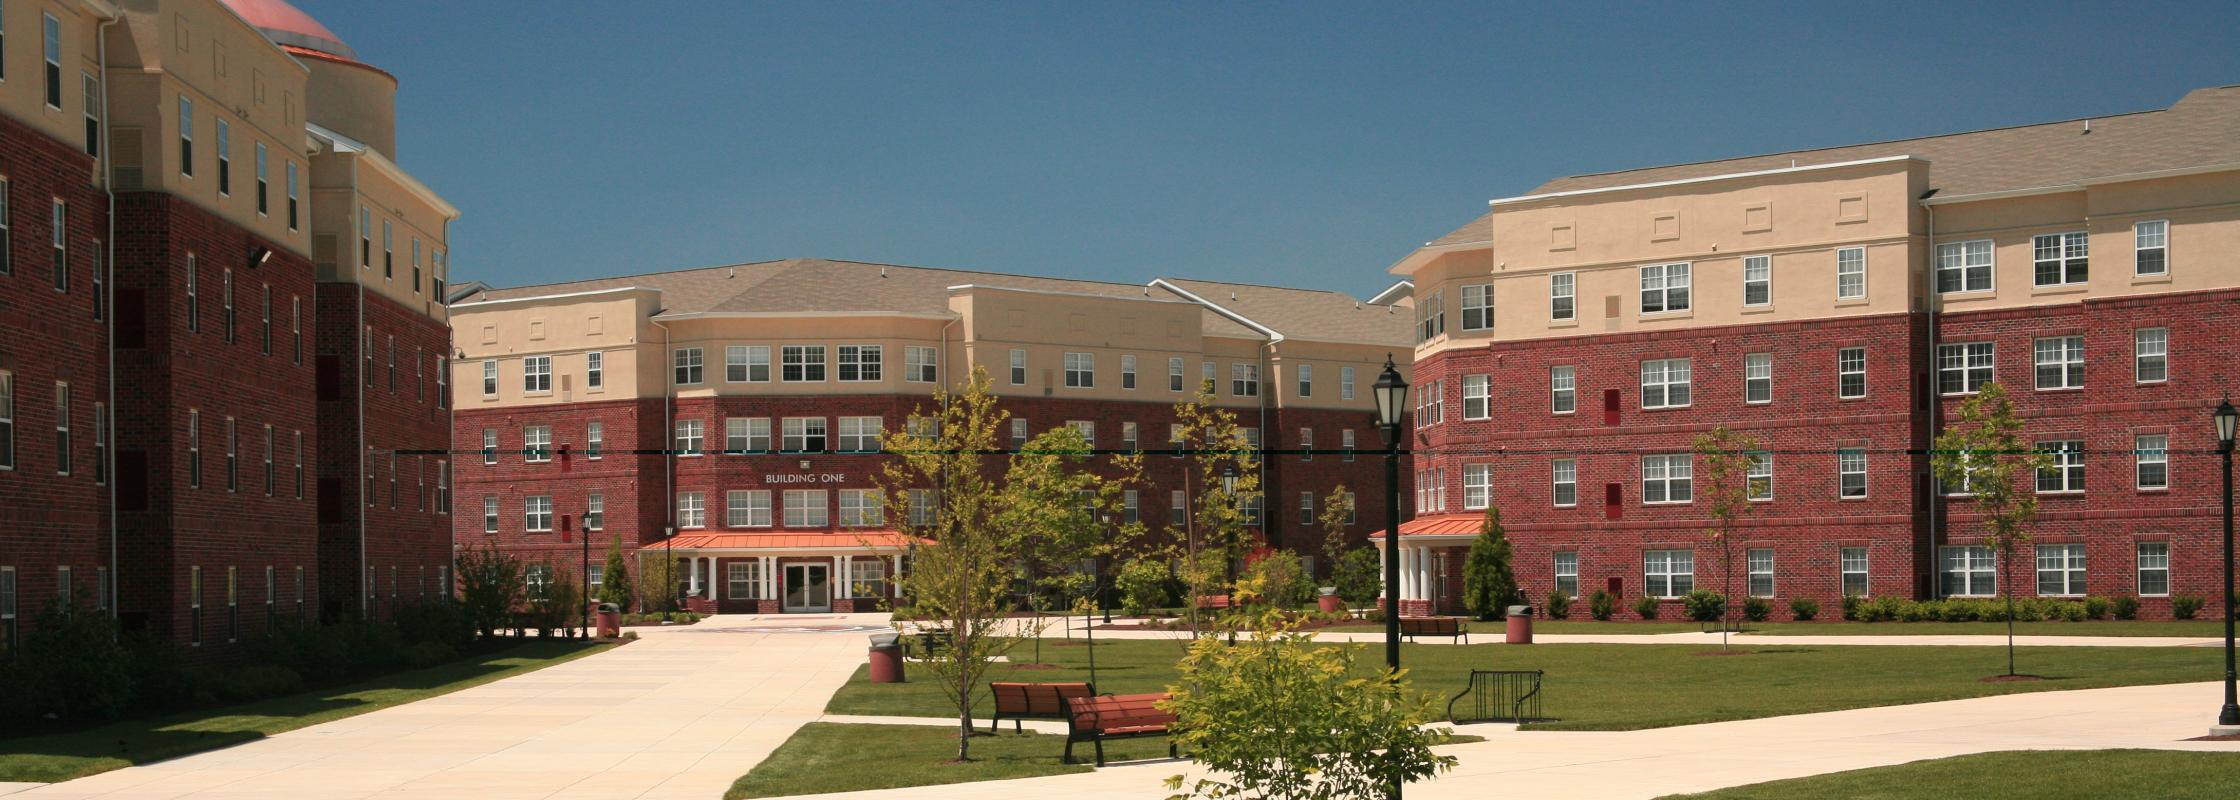 A building on the Delaware State University campus.